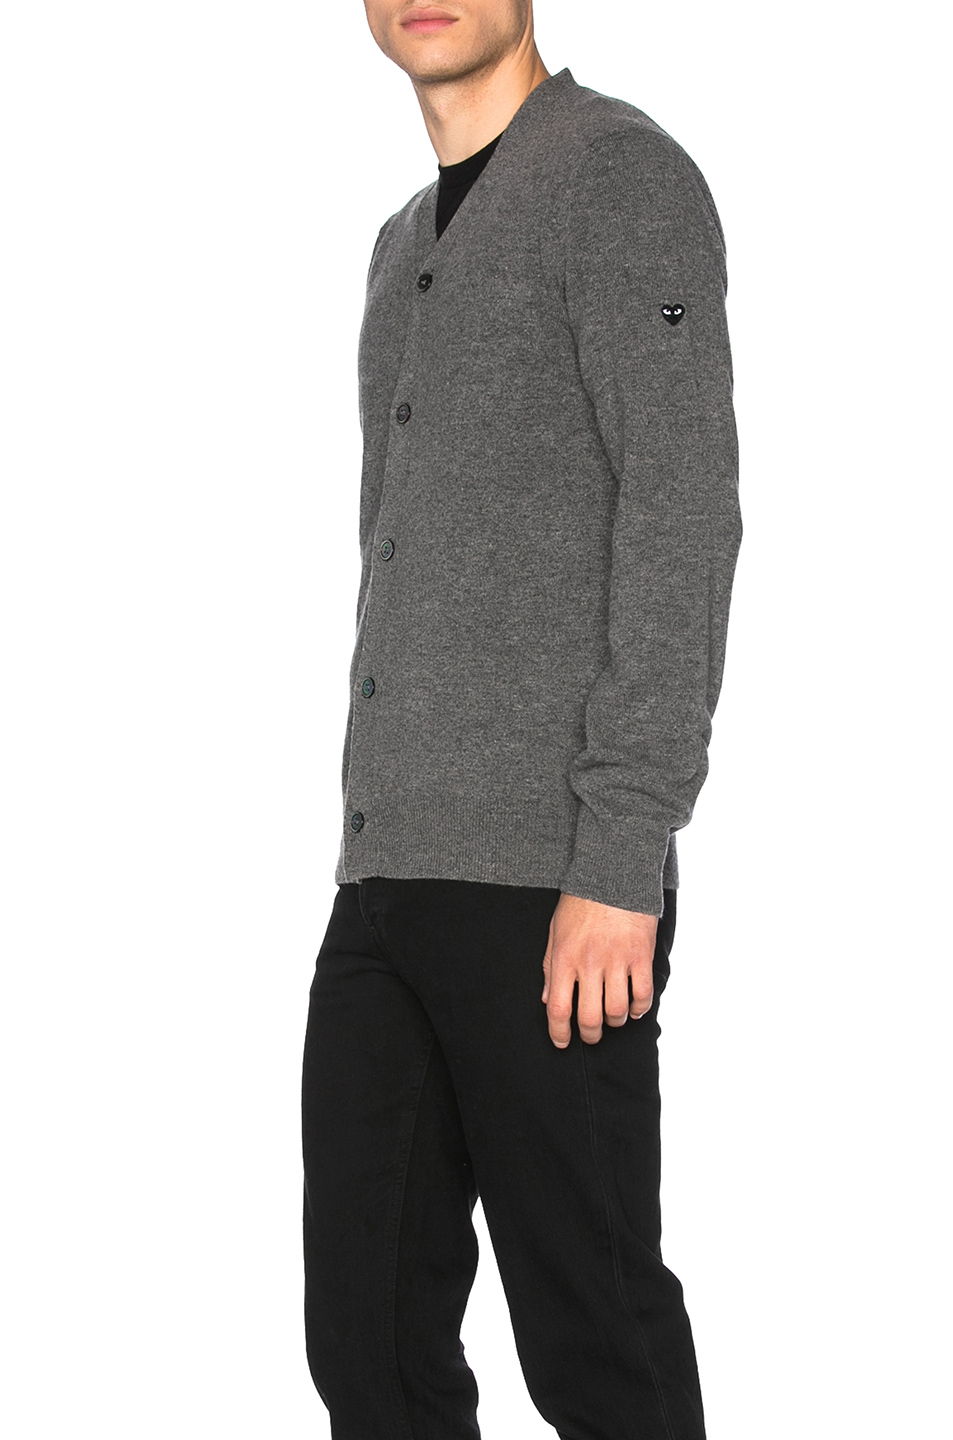 Photo of Comme Des Garcons PLAY Lambswool Cardigan with Small Black Emblem Sleeve in Gray - shop Comme Des Garcons PLAY menswear